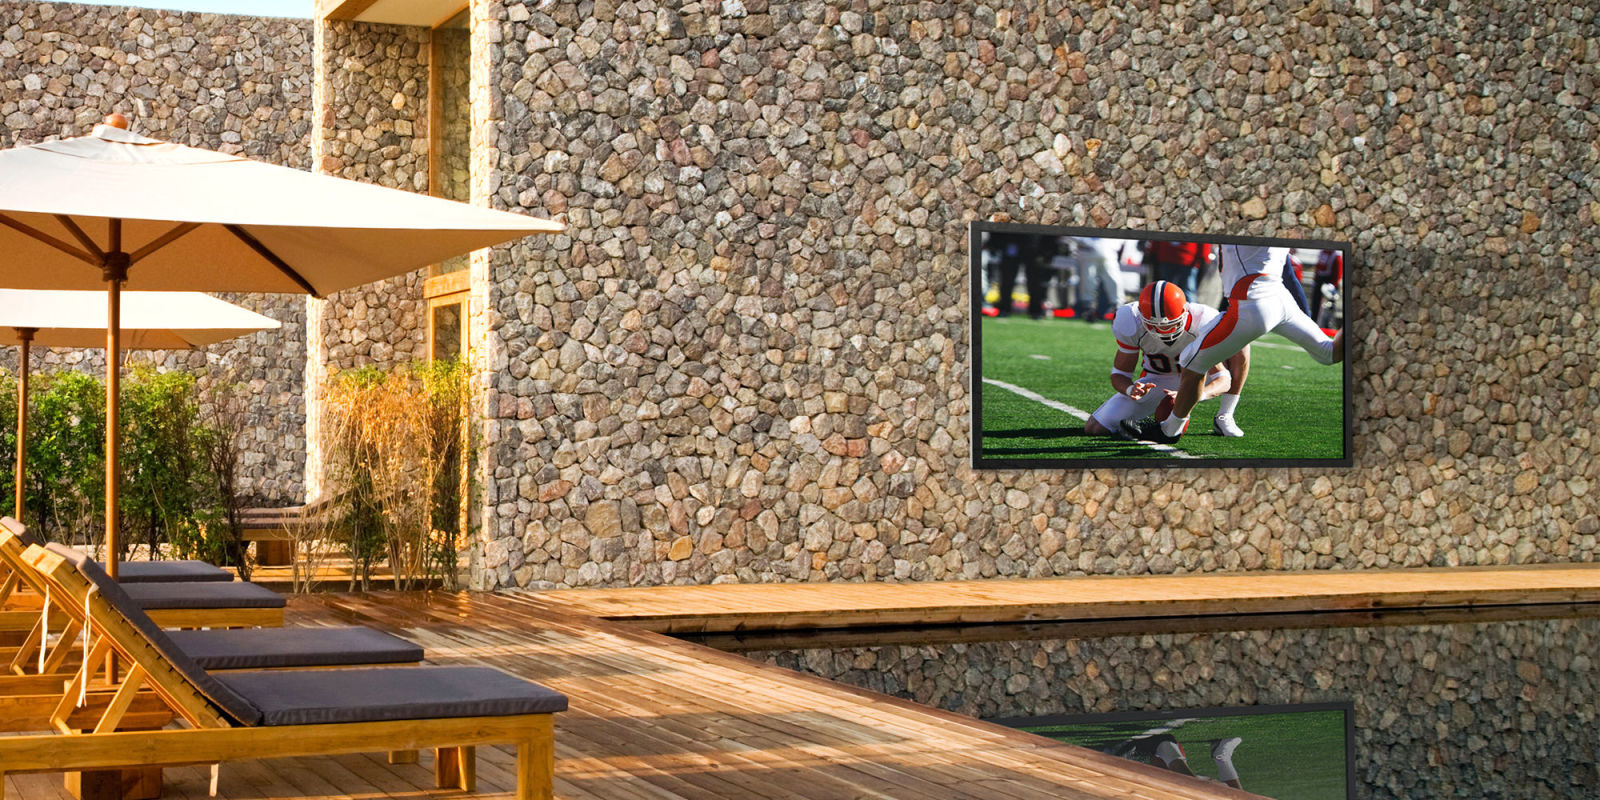 8 best outdoor tvs for your patio in 2017 outdoor televisions at